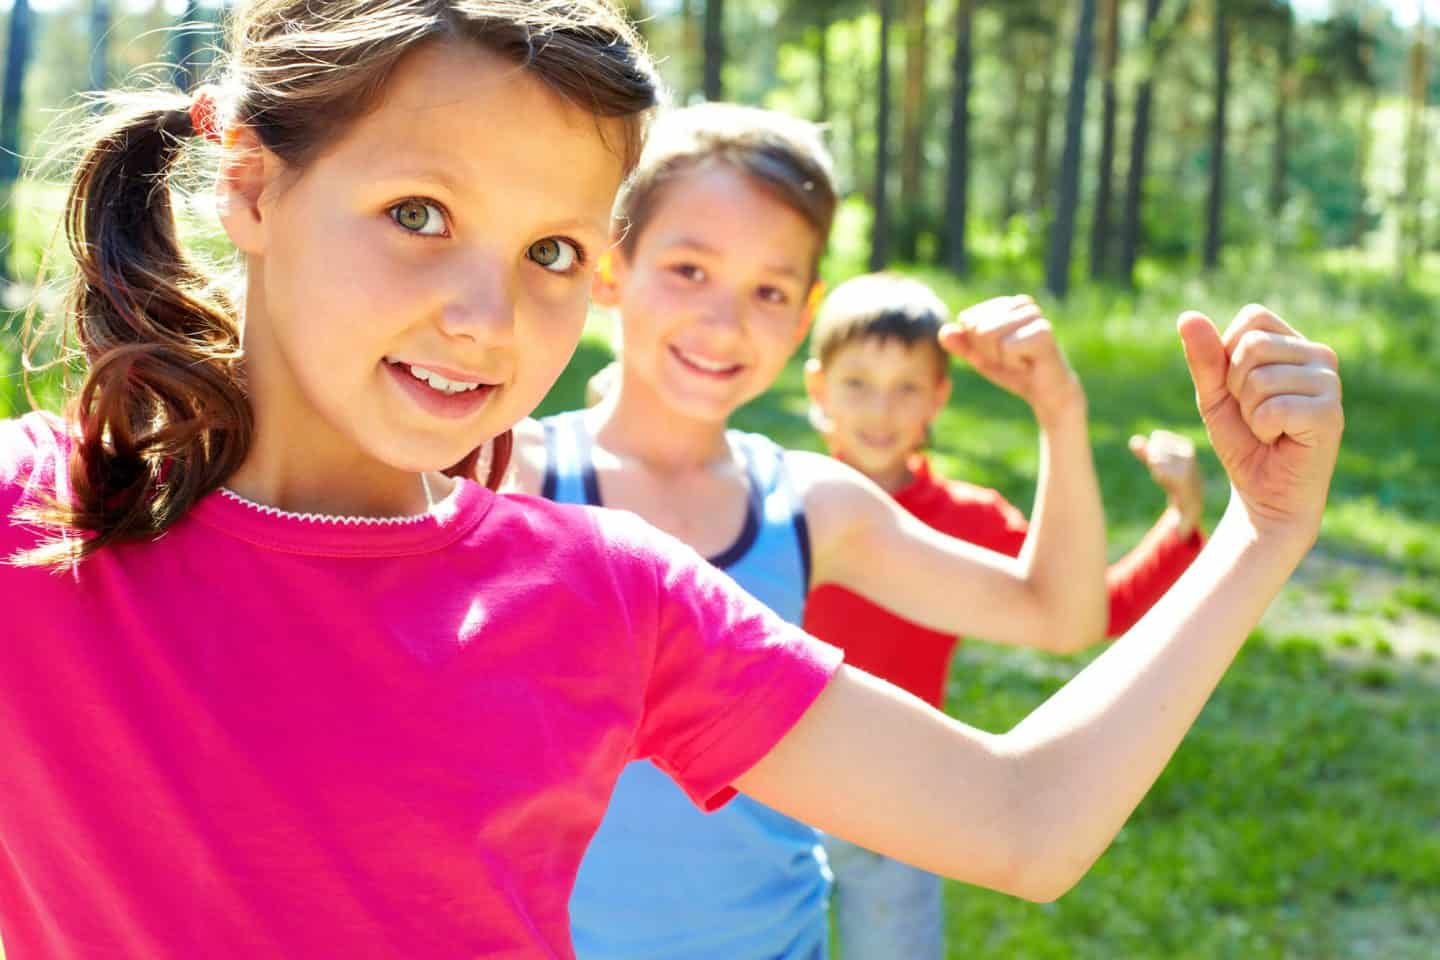 Determination - 8 Things Your Kids Need to Know About Failing